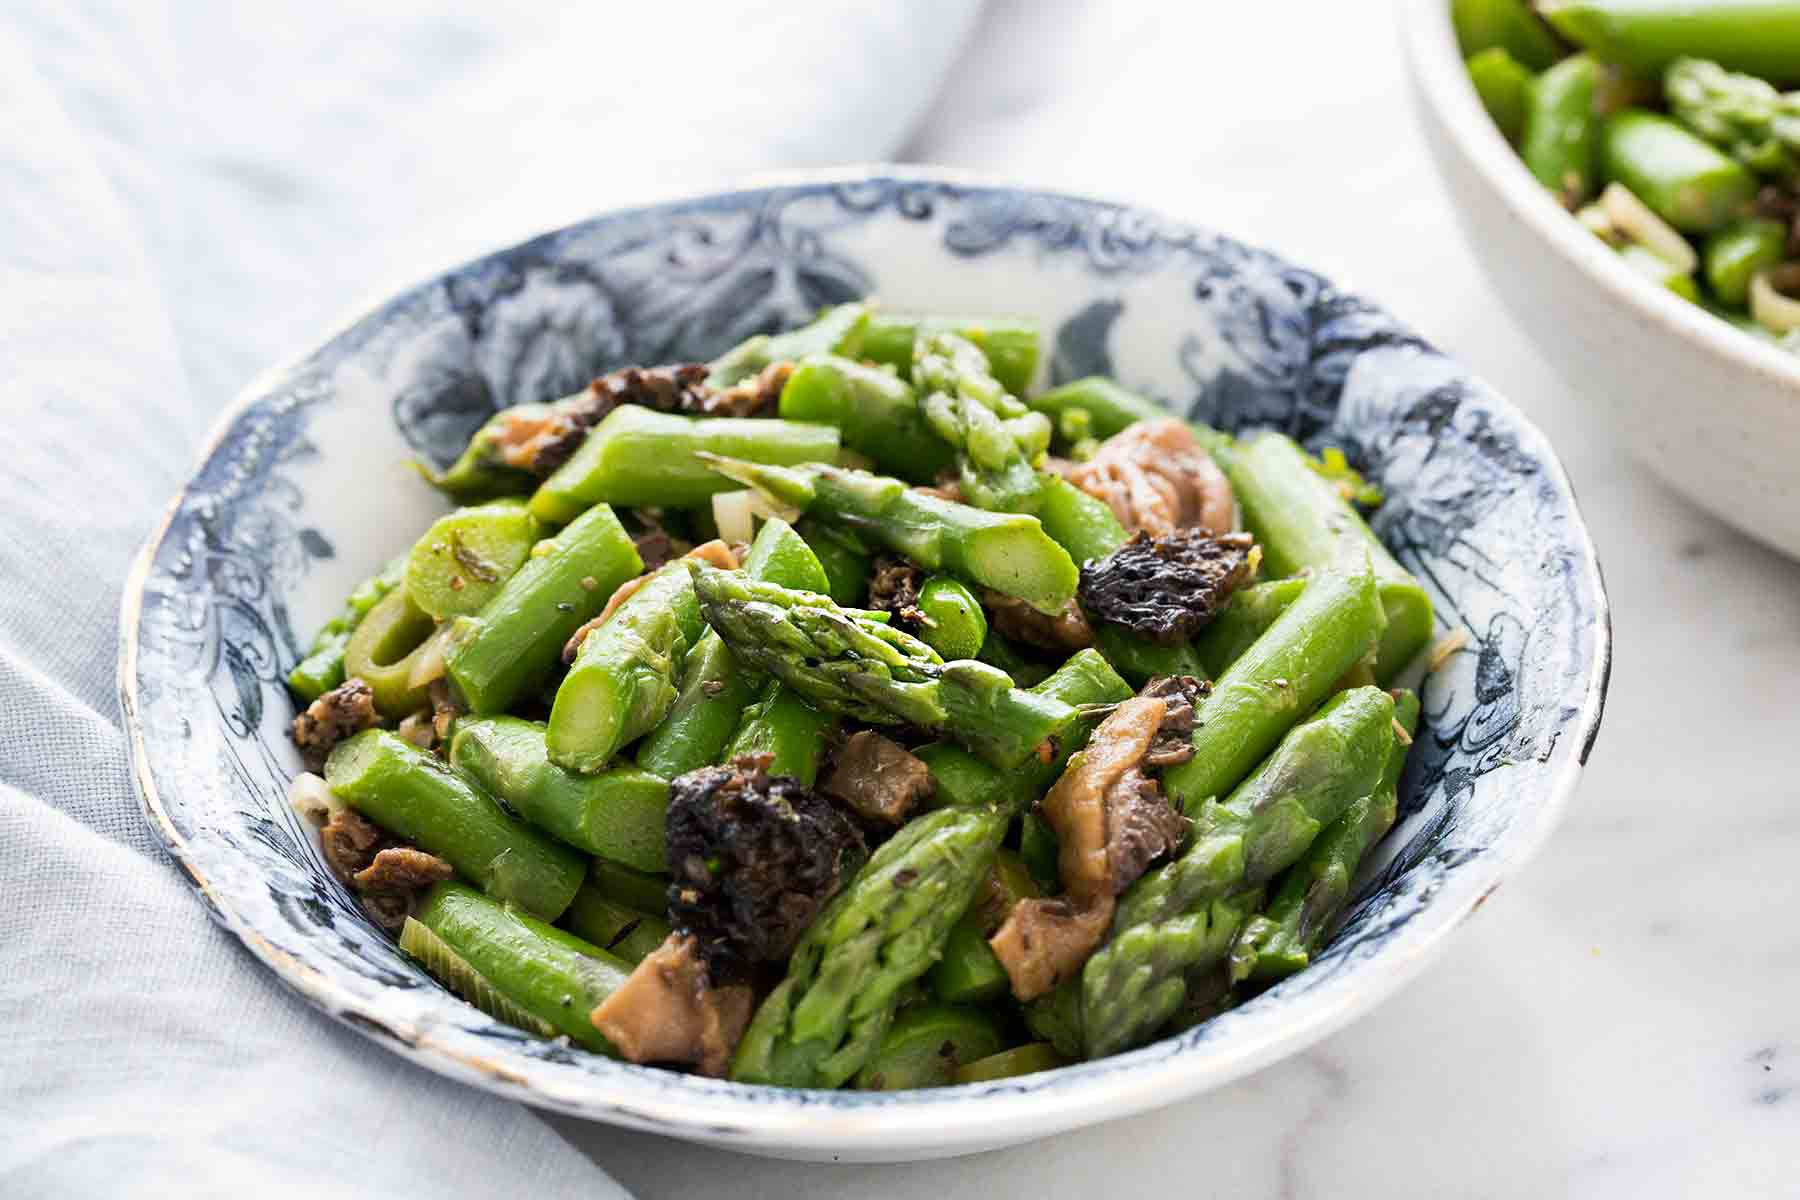 Sauteed Asparagus with Morels in a bowl